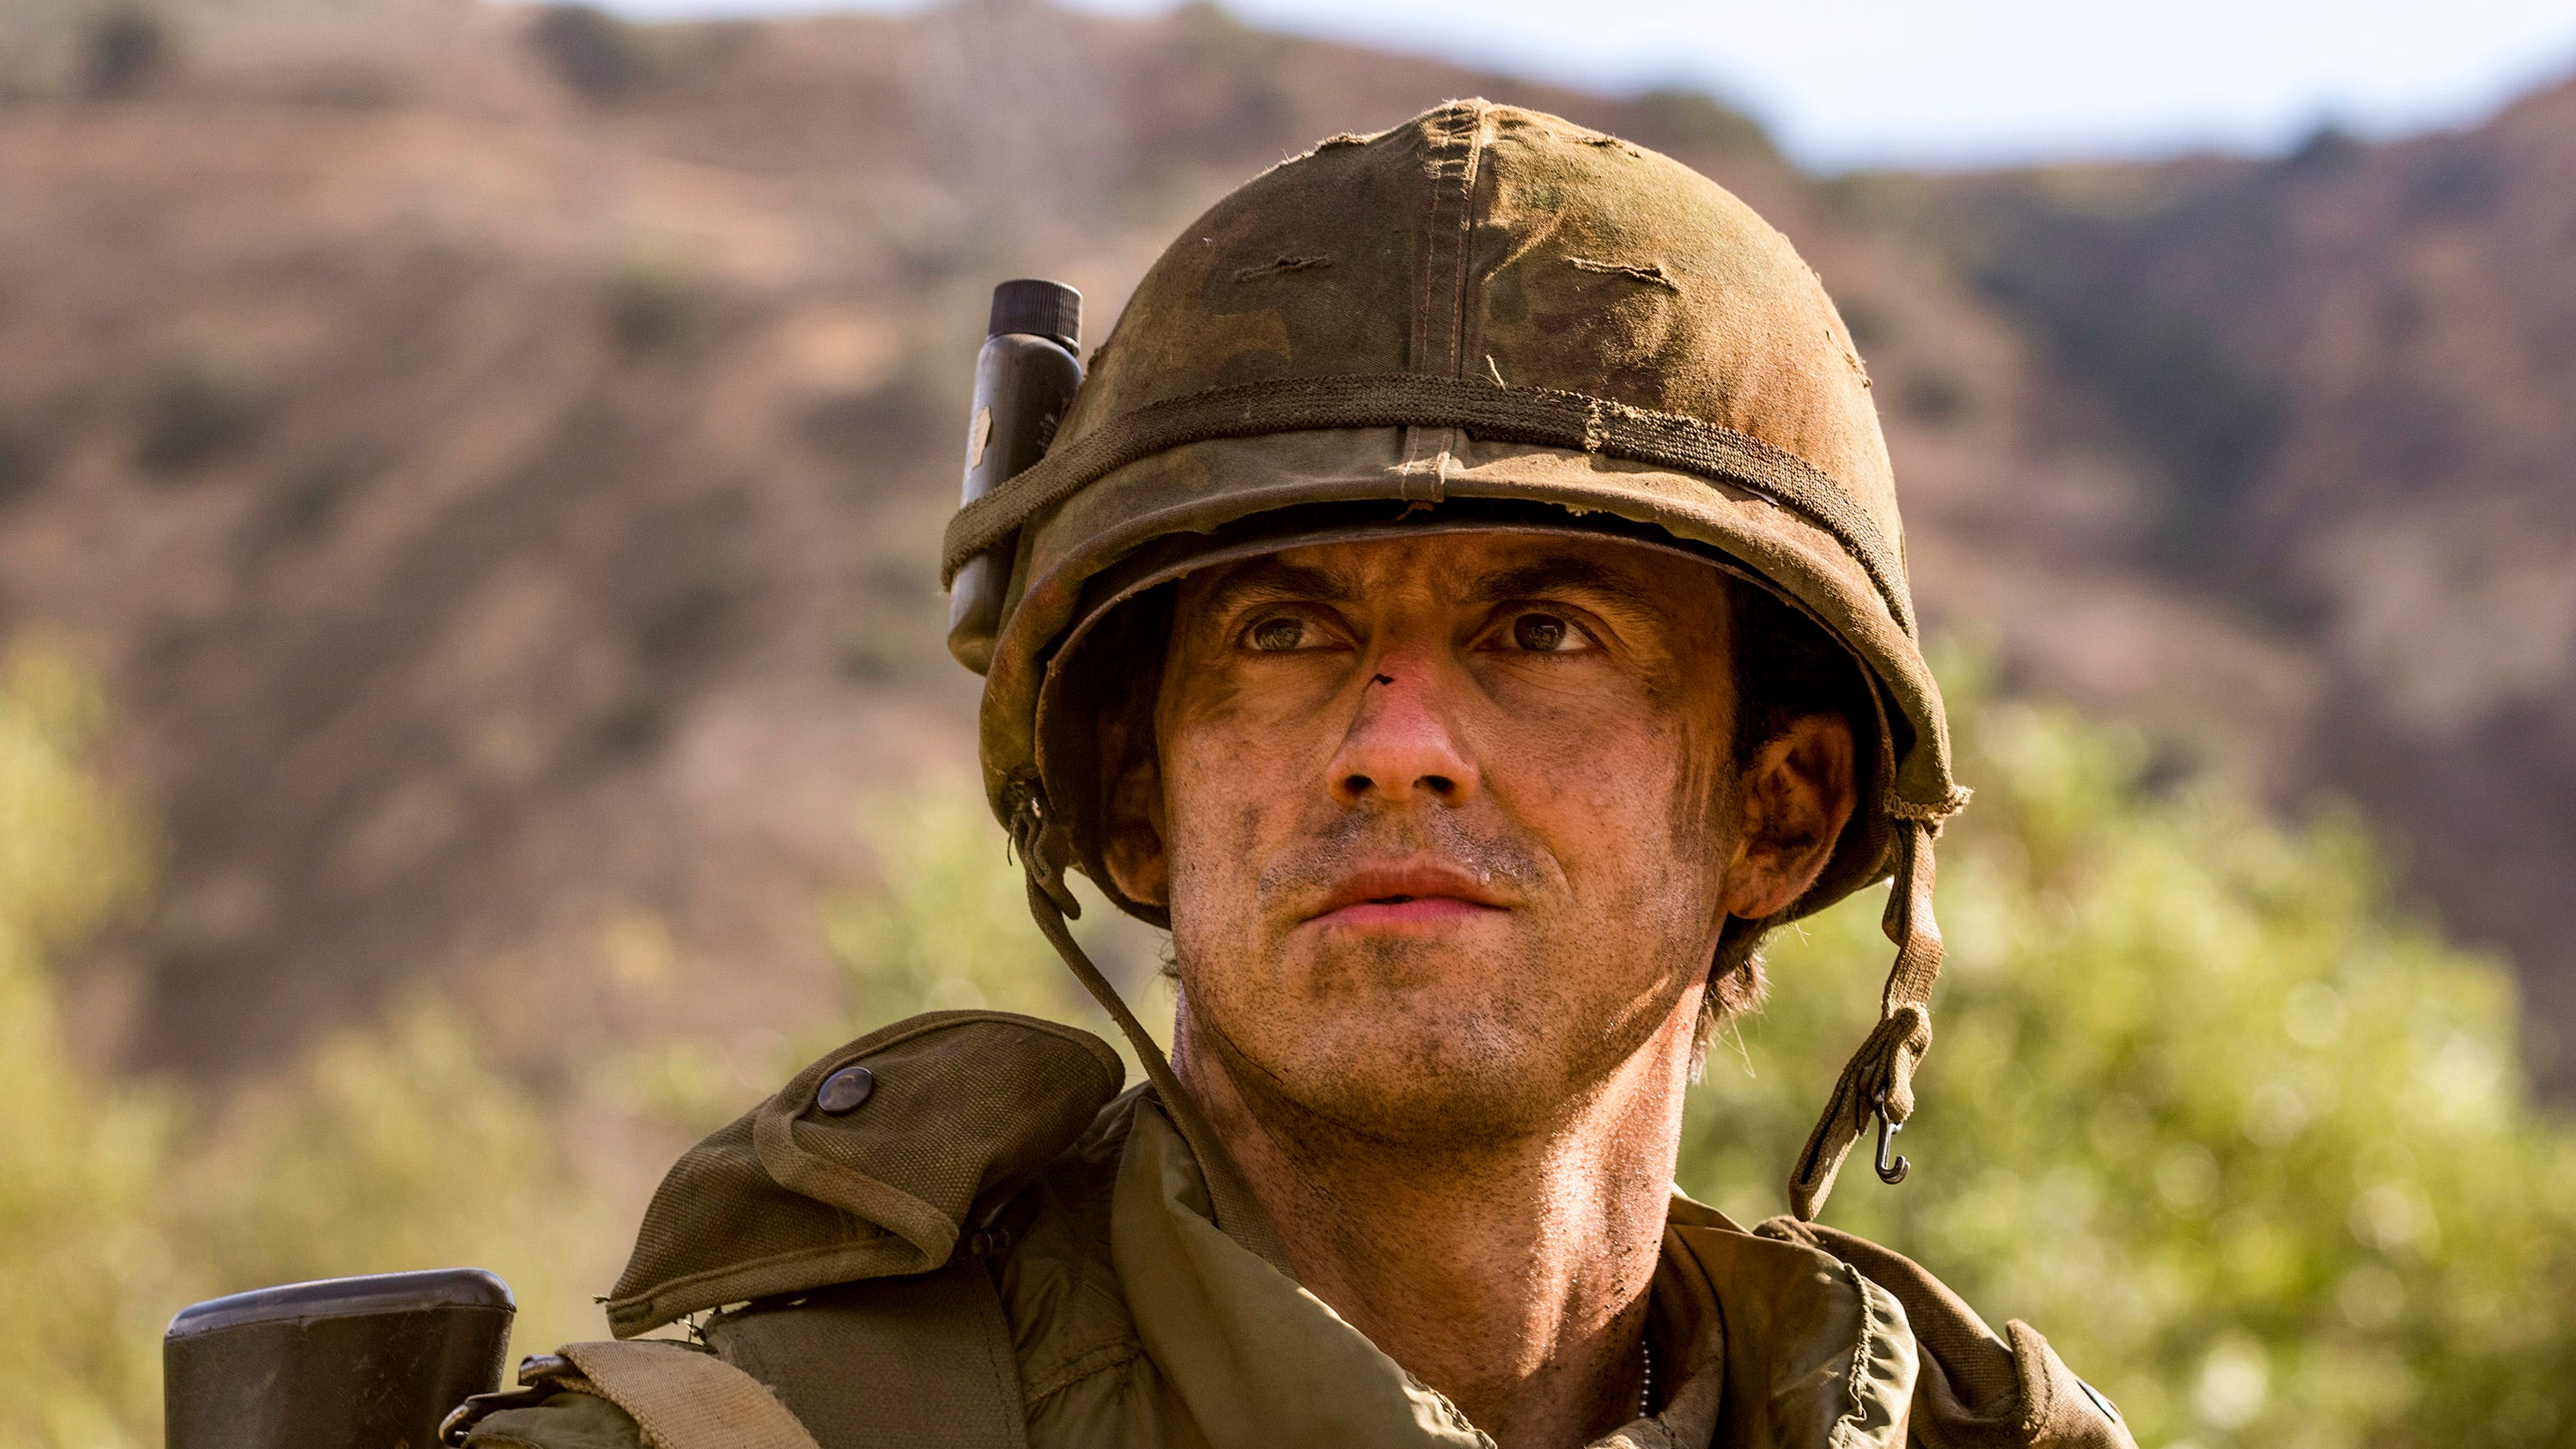 'This Is Us' recap: Jack Pearson's heart of darkness